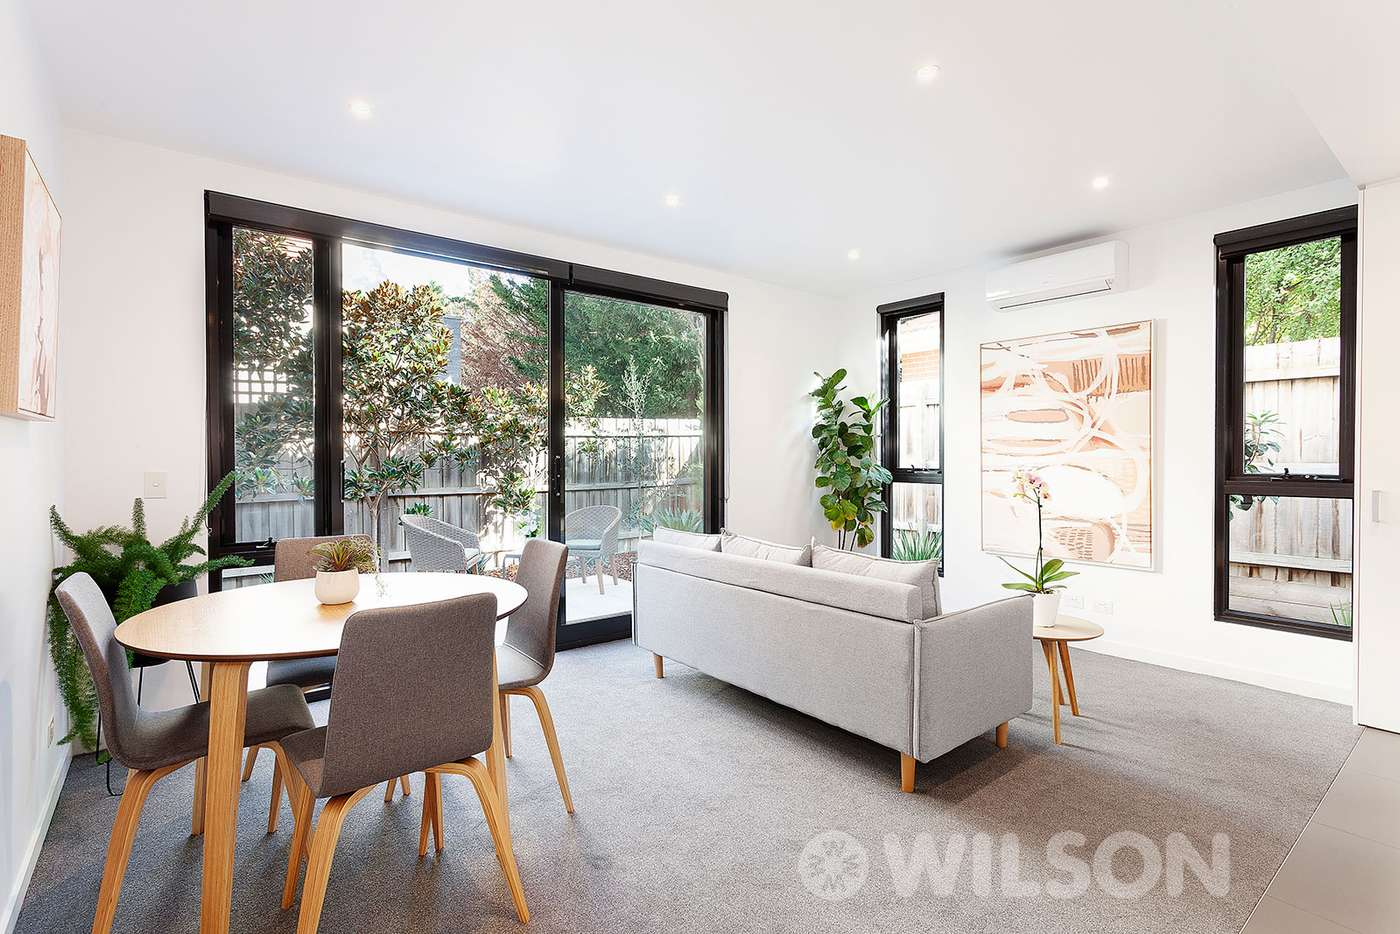 Main view of Homely apartment listing, 6/17 Railway Parade, Murrumbeena VIC 3163